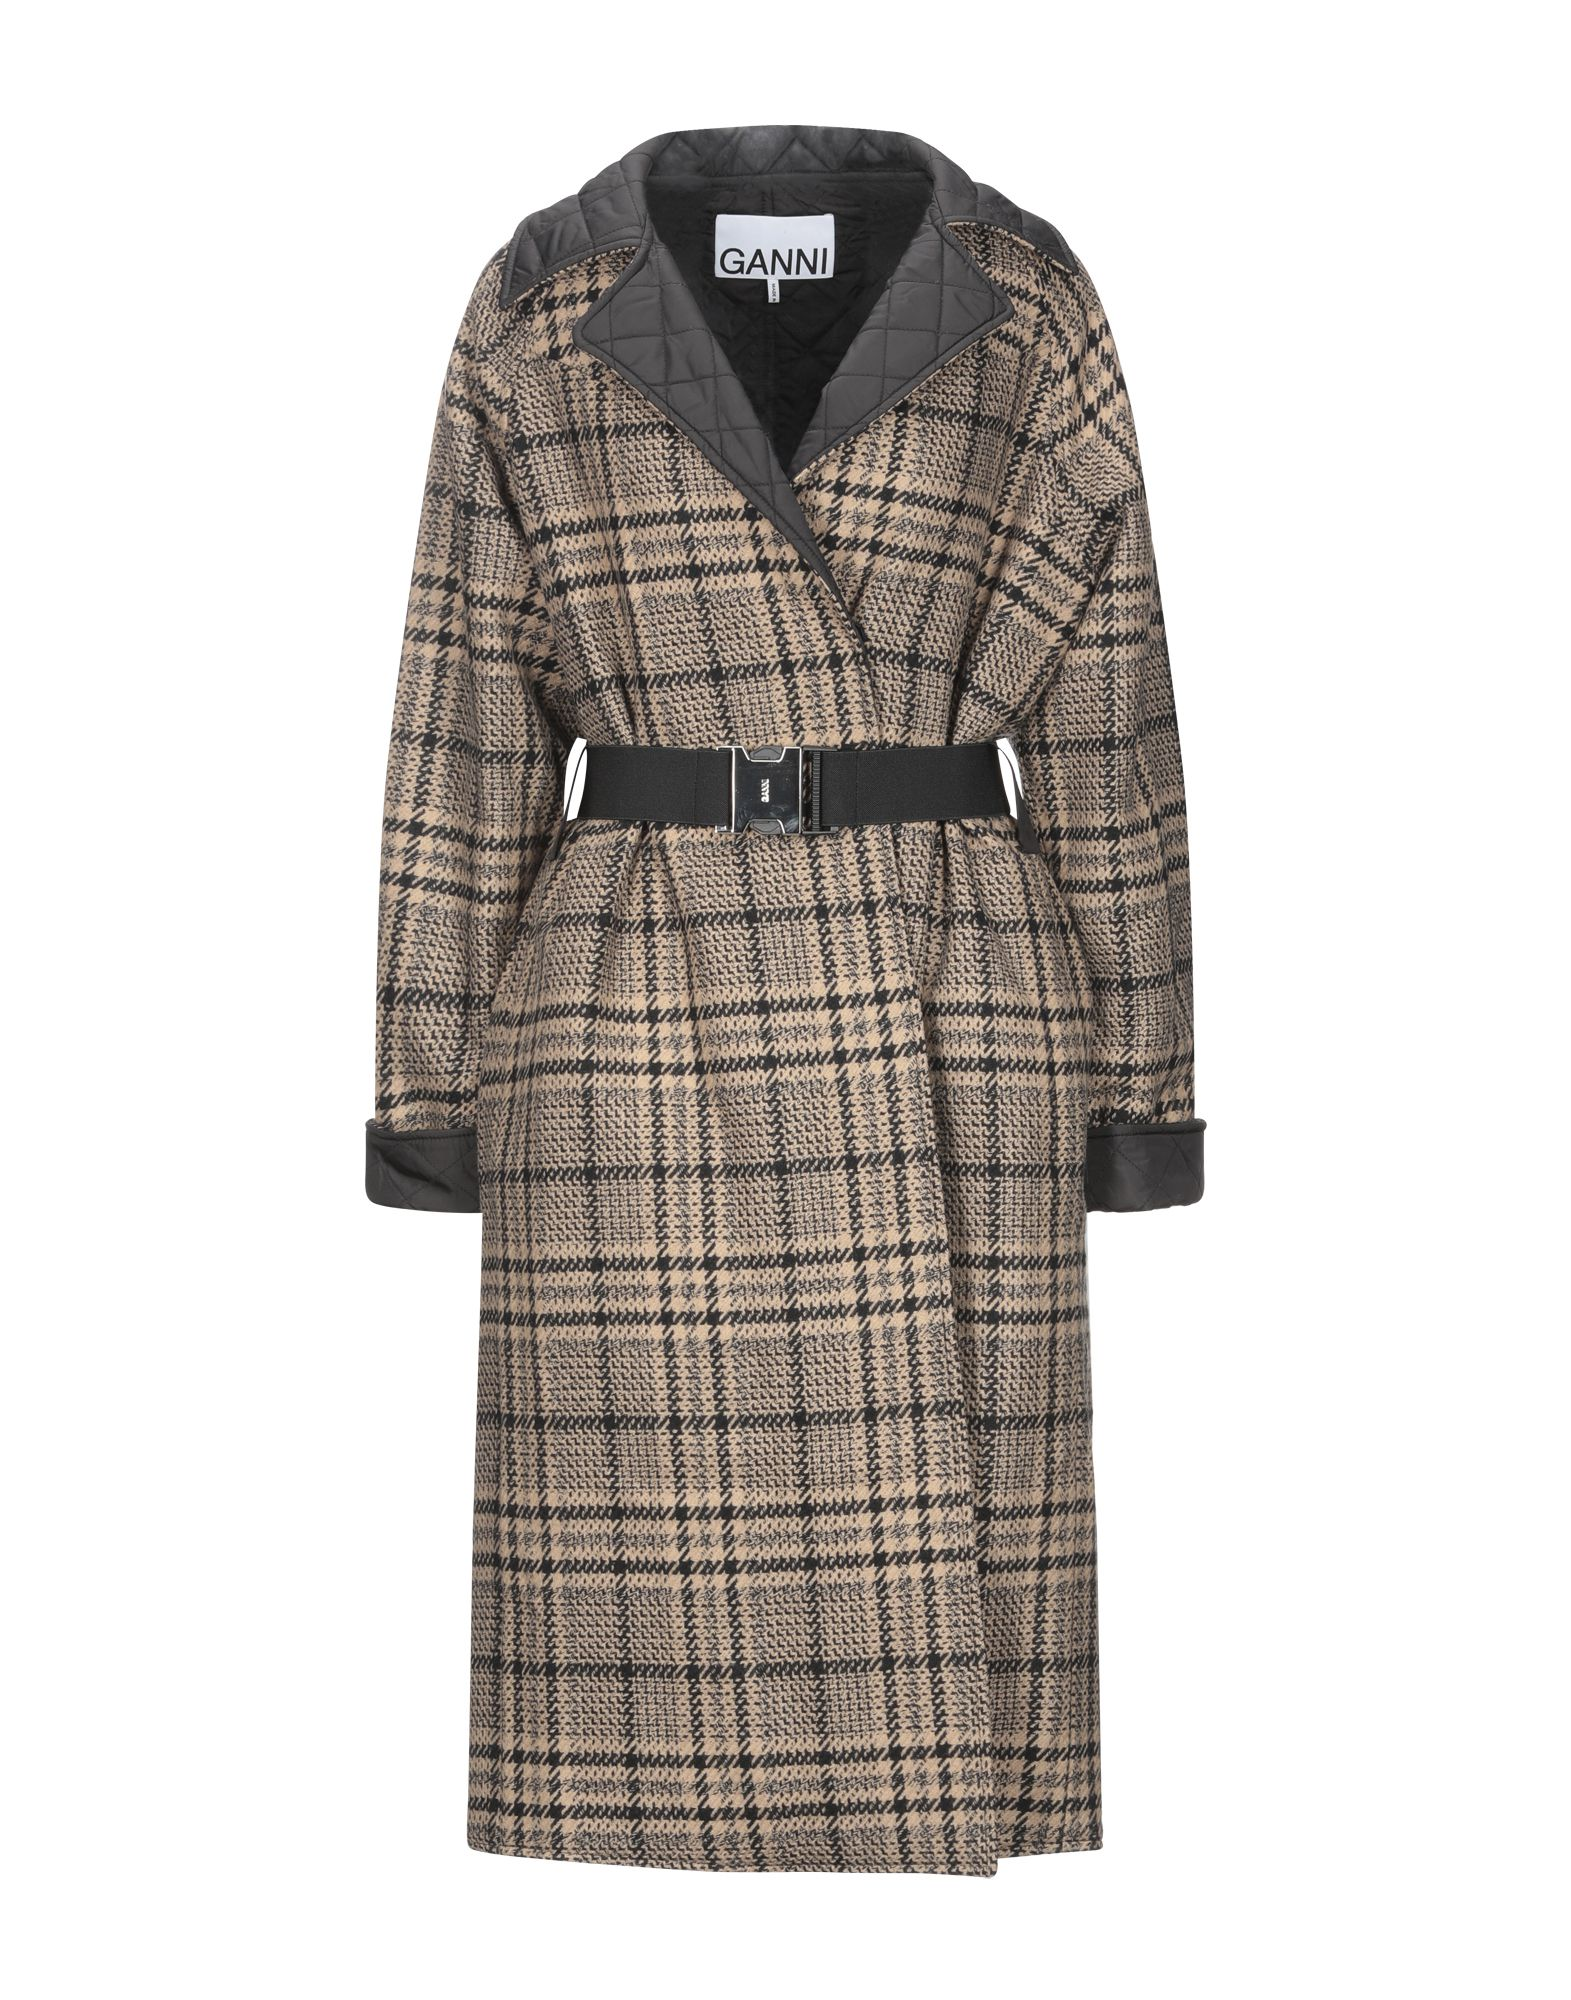 GANNI Coats. flannel, belt, checked, double-breasted, snap buttons fastening, lapel collar, multipockets, long sleeves, fully lined, large sized, double face. 63% Wool, 32% Acrylic, 5% Polyester